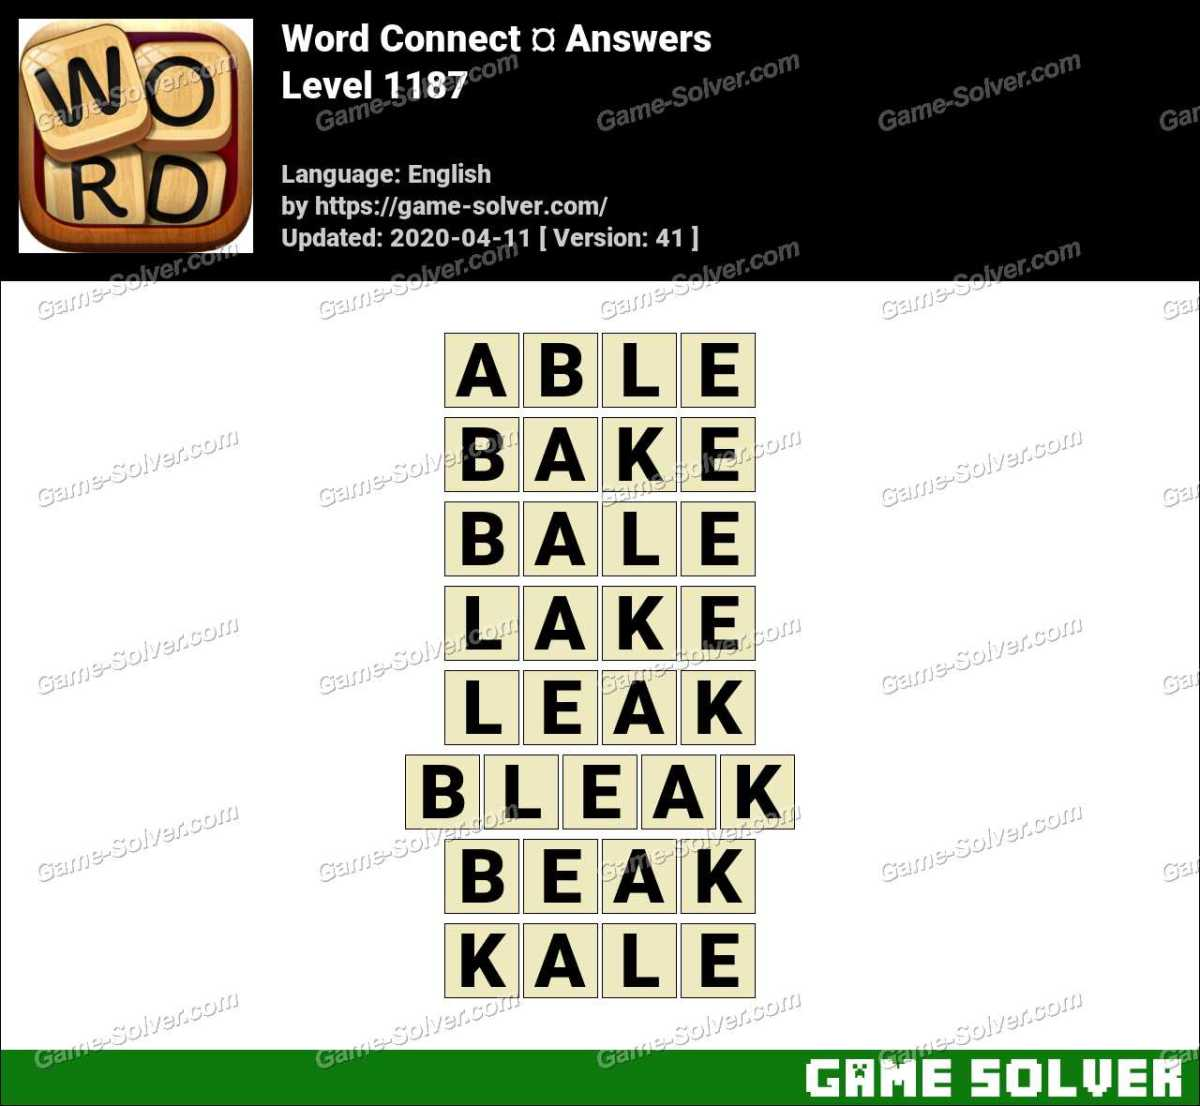 Word Connect Level 1187 Answers